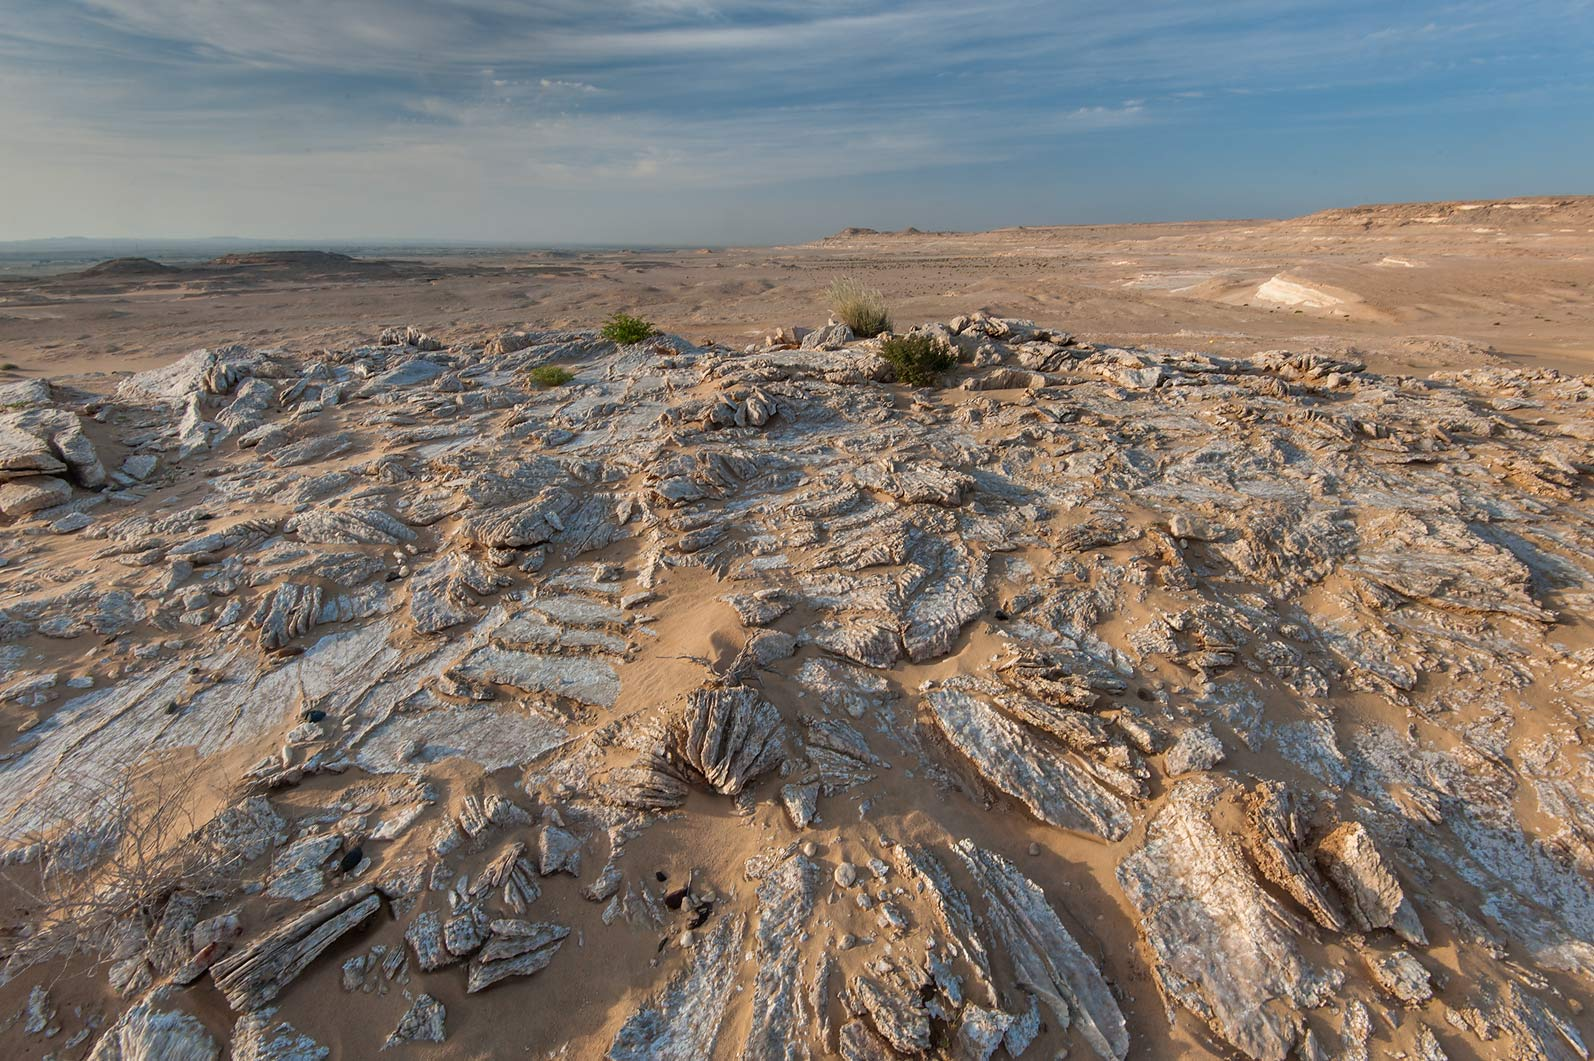 Gypsum plateau in area of Jebel Al-Nakhsh (Khashm an Nakhsh). South-western Qatar